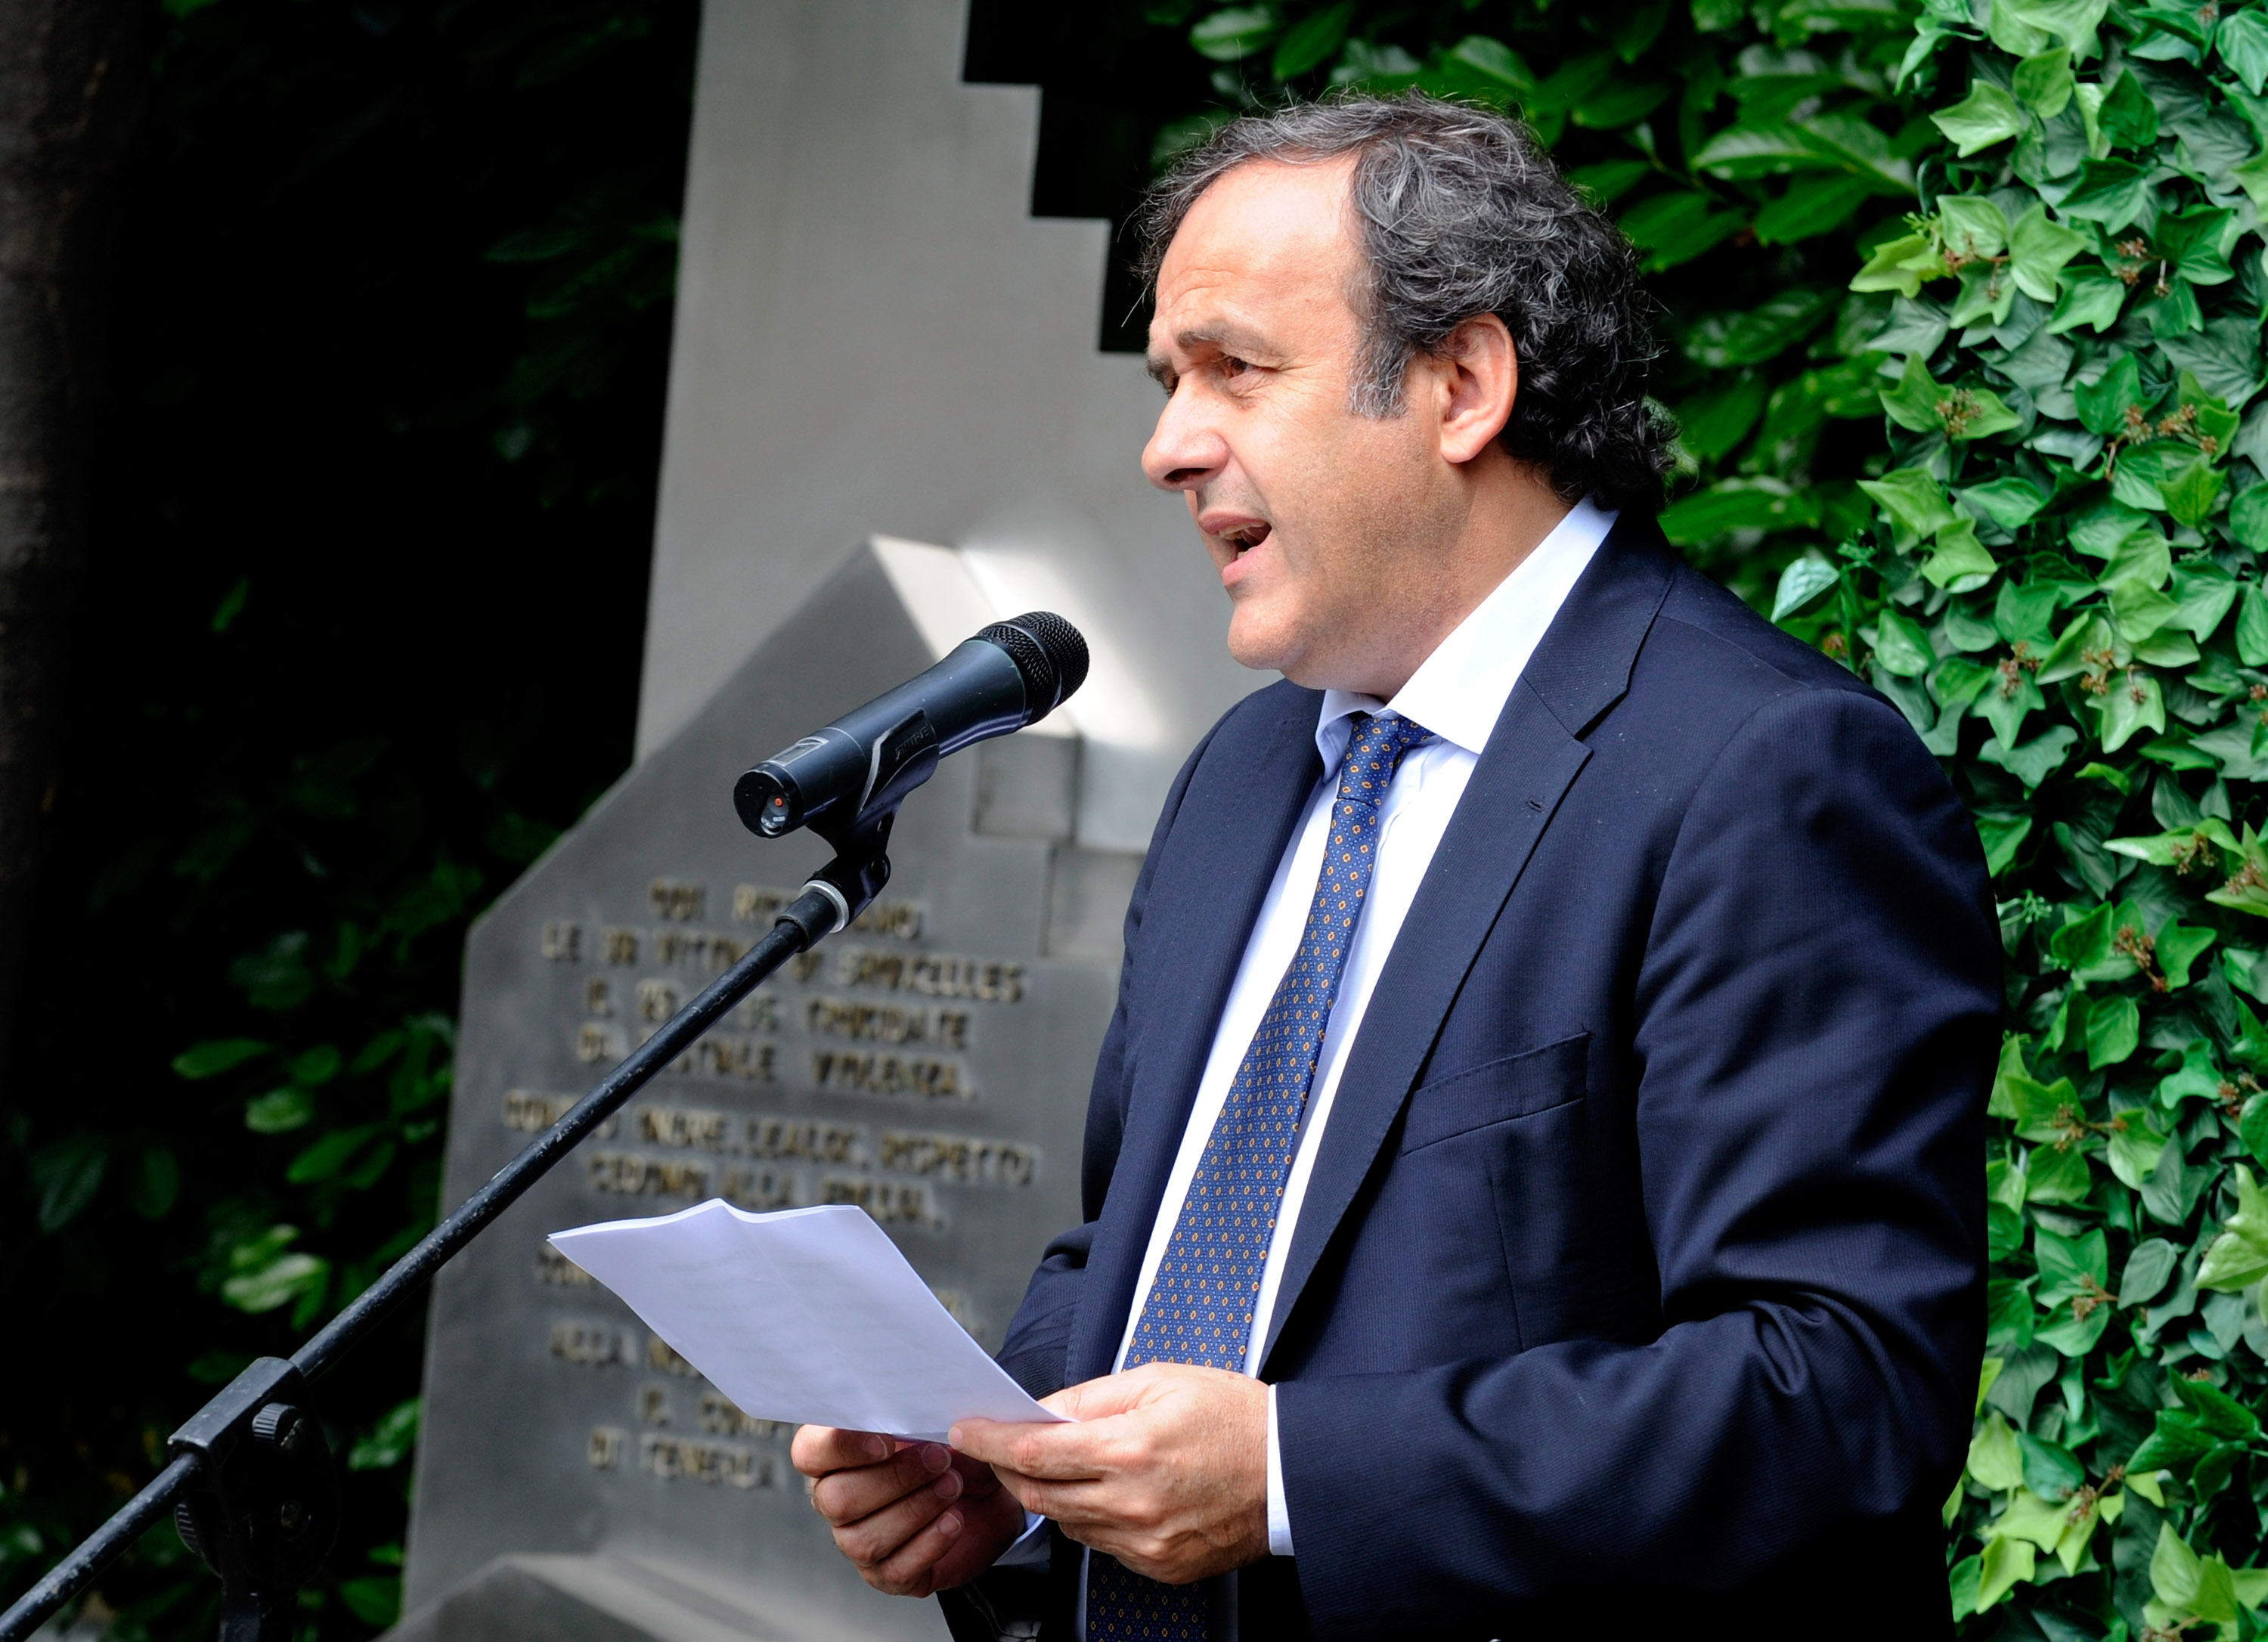 TURIN, ITALY - MAY 29:  UEFA President Michel Platini during the Heysel commemorative ceremony on May 29, 2010 in Turin, Italy. The ceremony remembers the disaster 25 years ago at Heysel Stadium when a wall collapsed before a Juventus - Liverpool match an